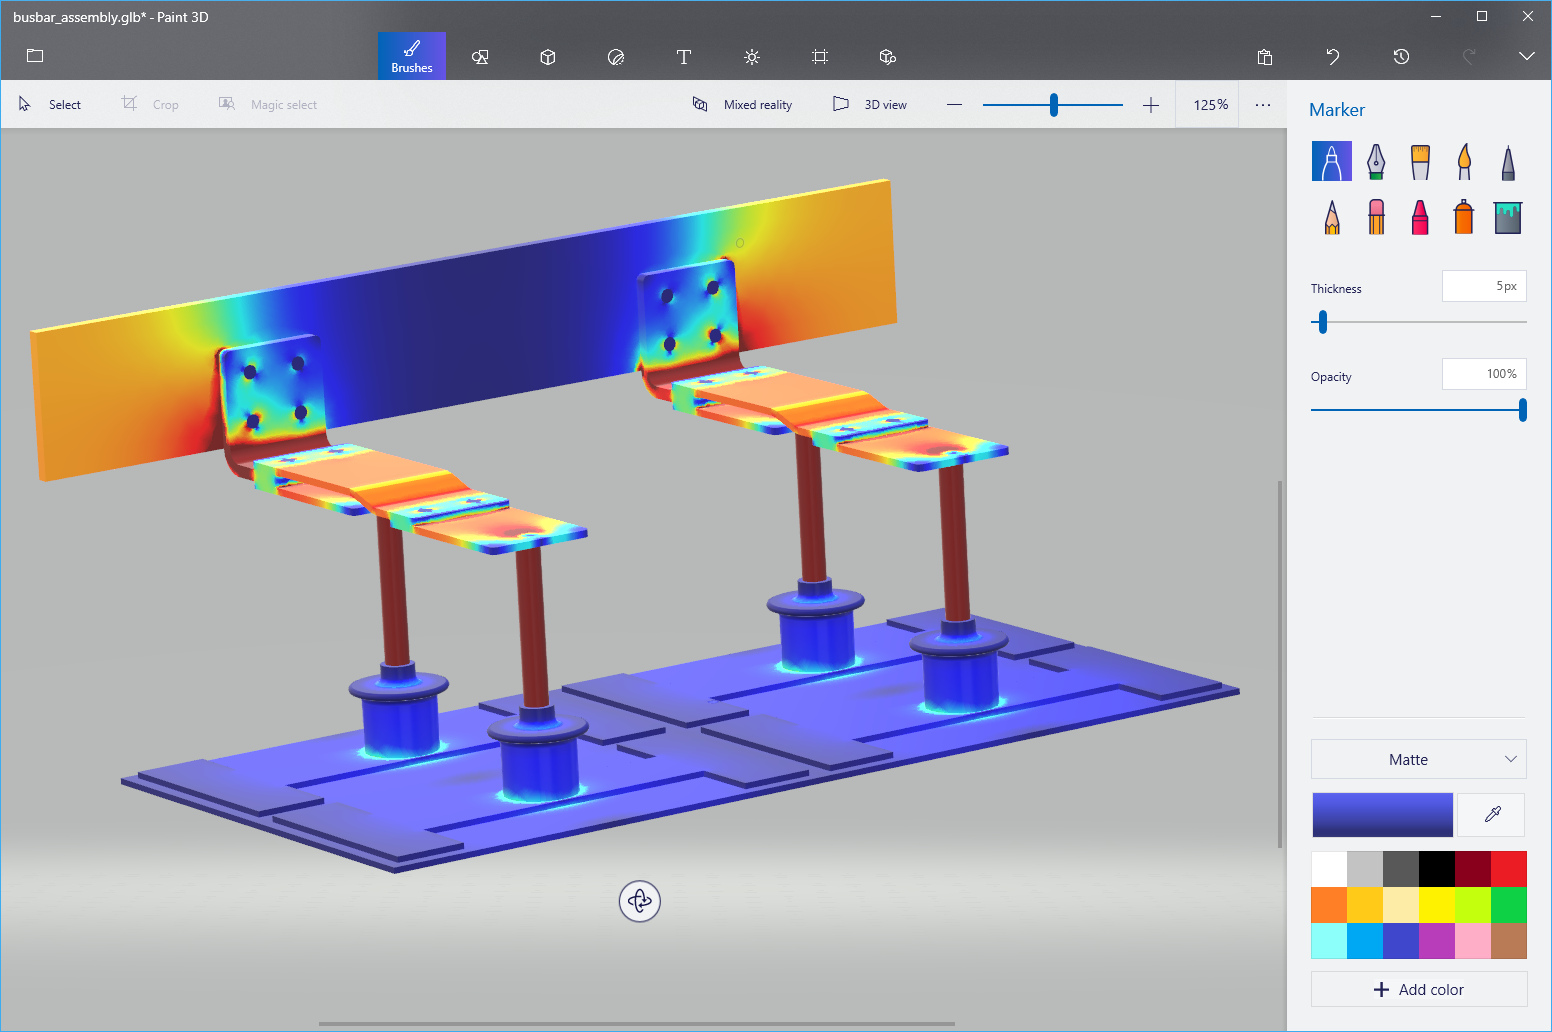 A COMSOL Multiphysics model exported as a glTF file and imported into Paint 3D.